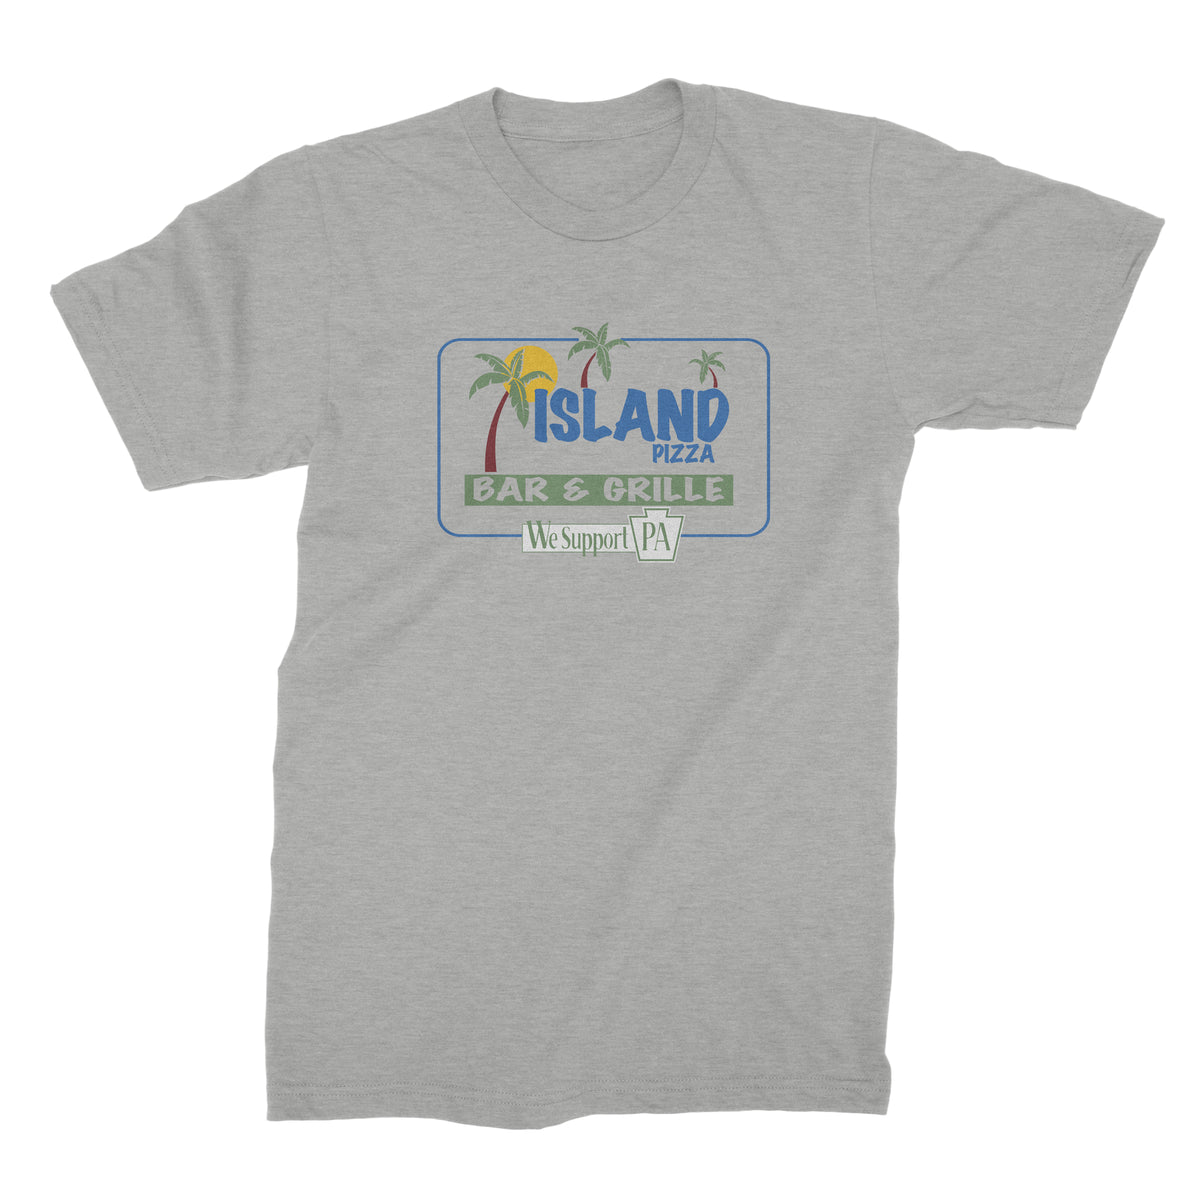 Island Pizza We Support PA T-Shirt